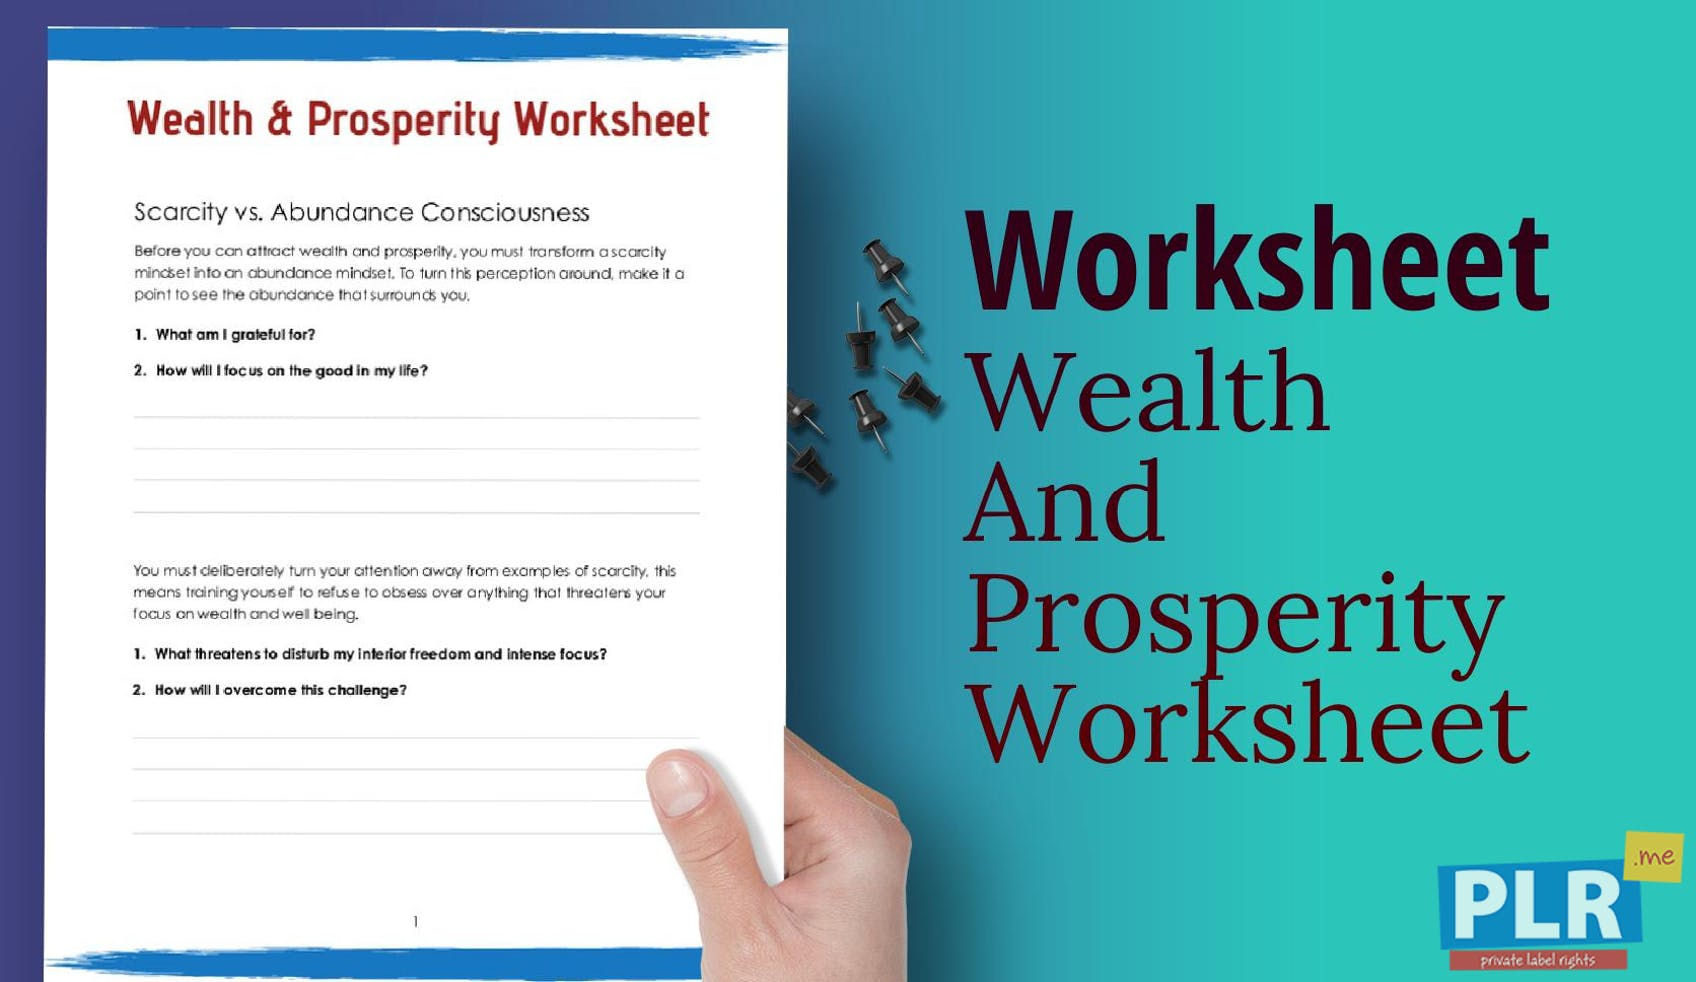 Wealth And Prosperity Worksheet